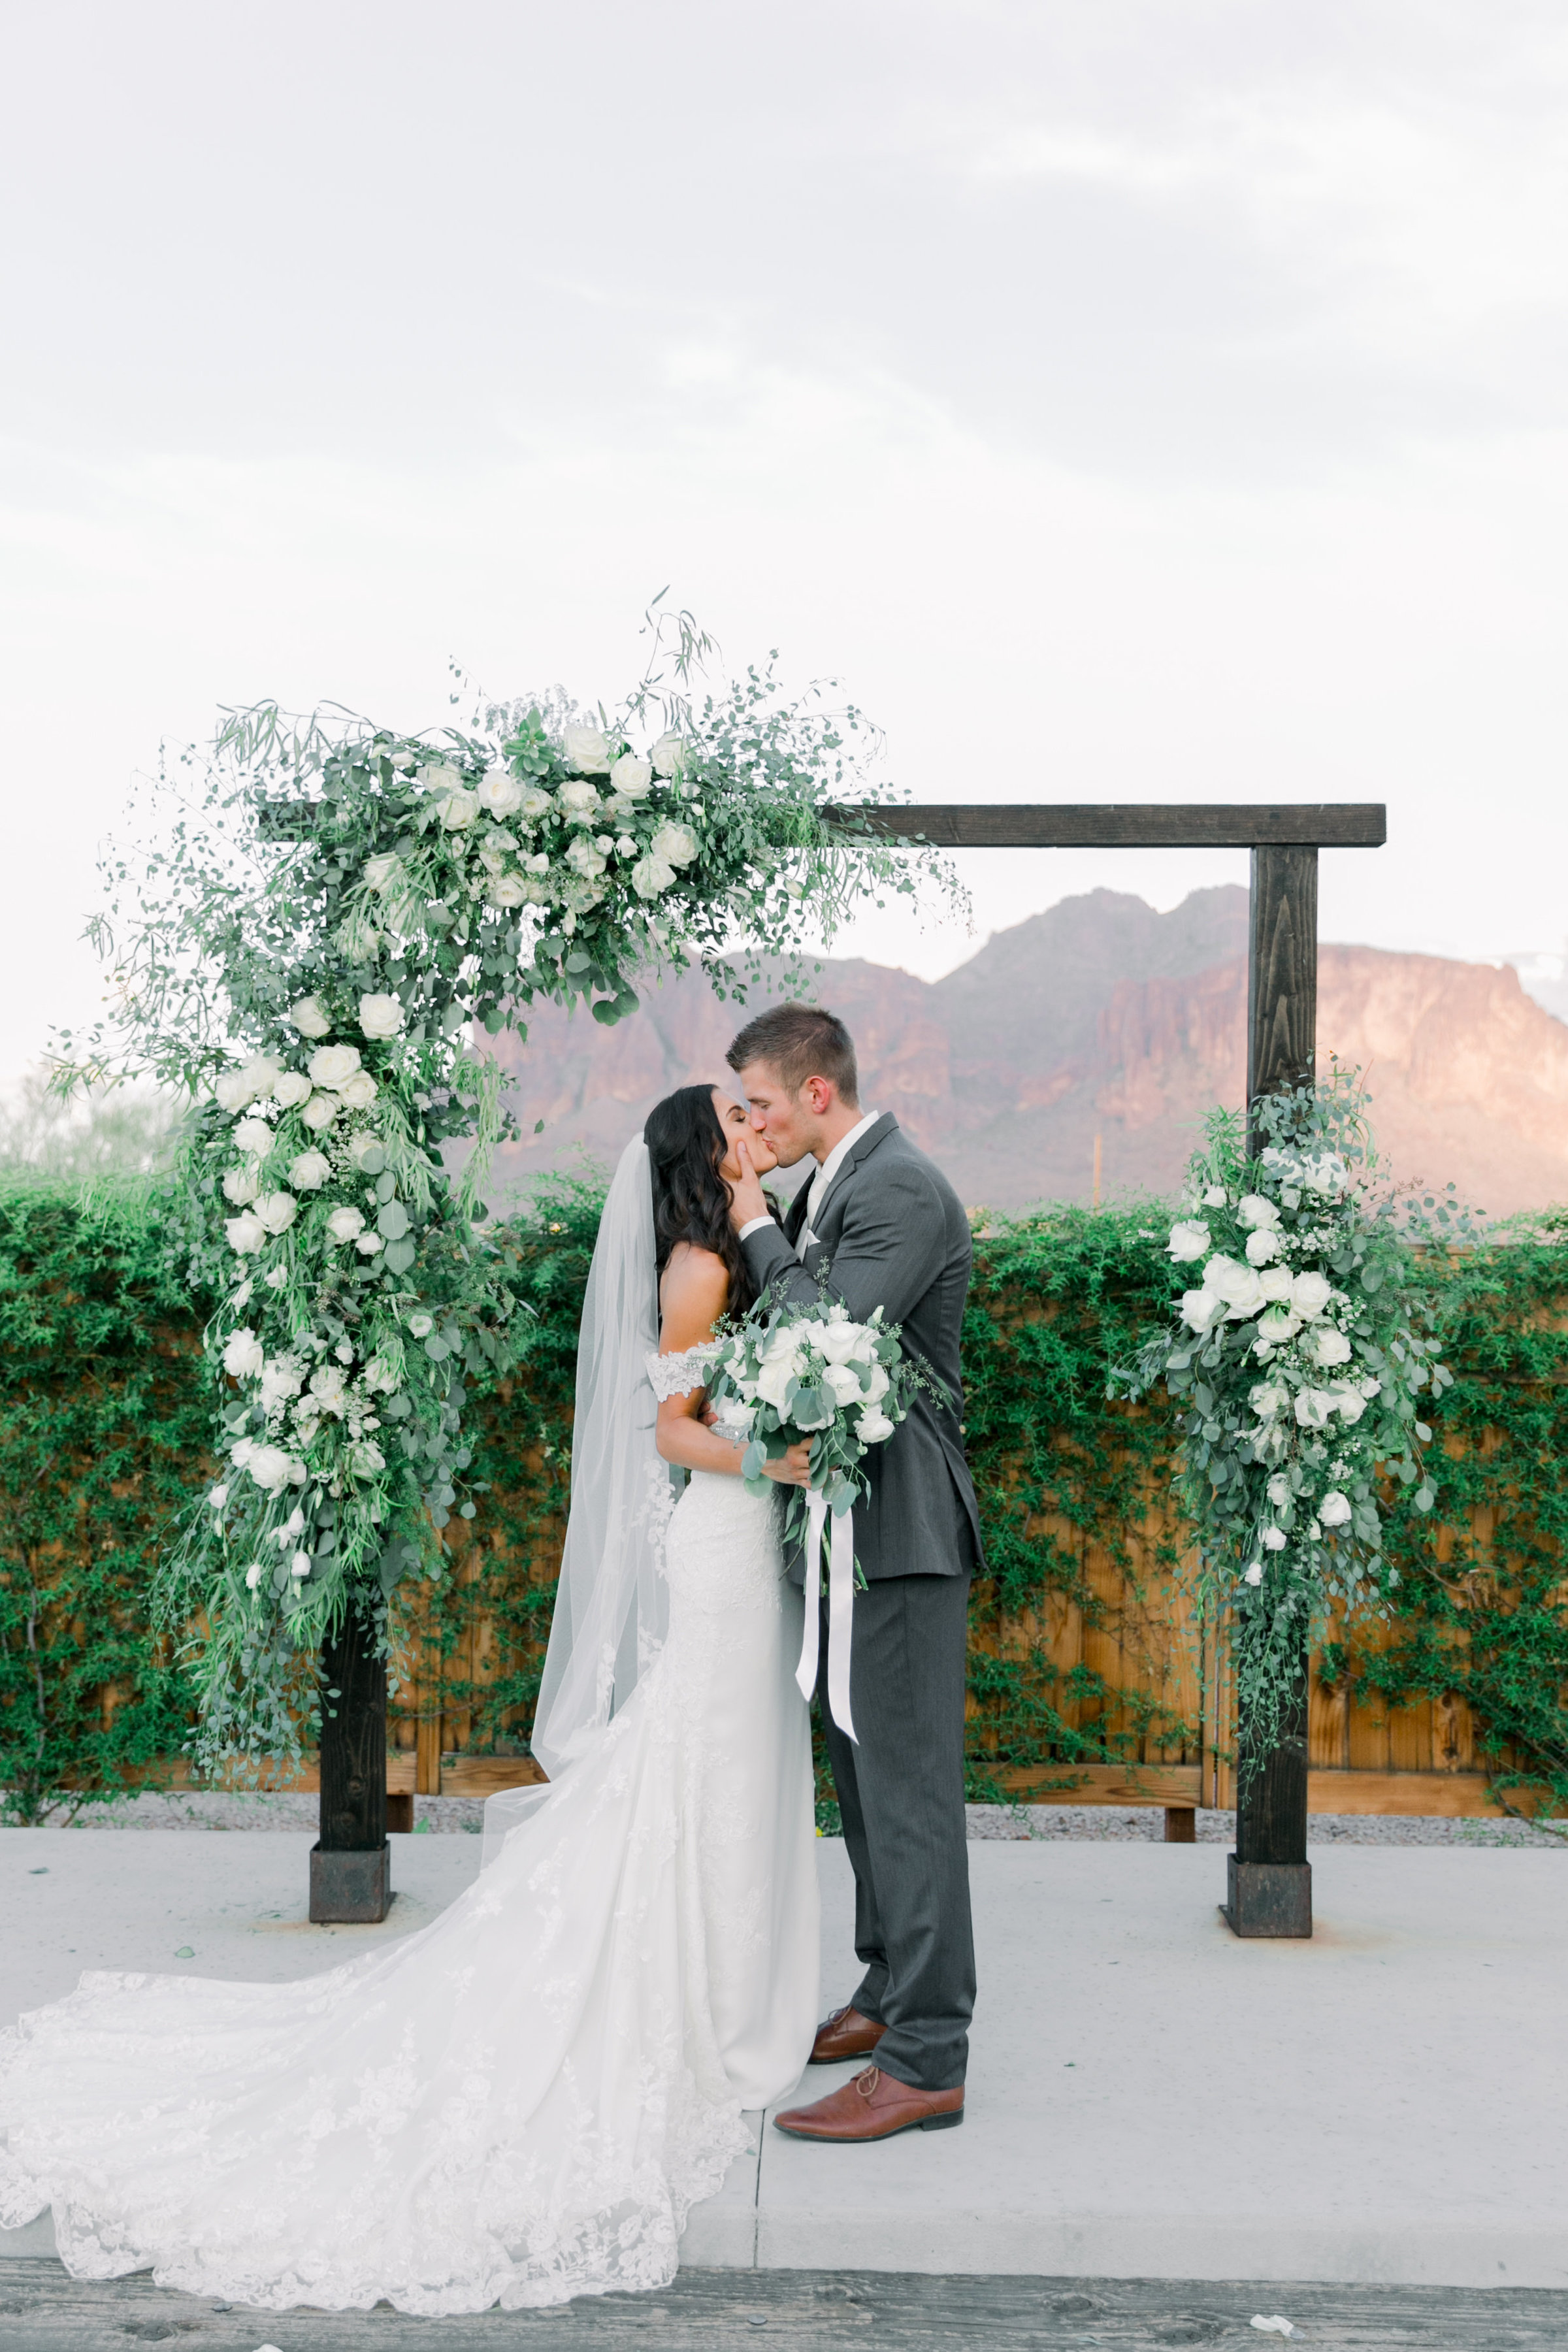 Karlie Colleen Photography - The Paseo Venue - Arizona Wedding - Jackie & Ryan-13